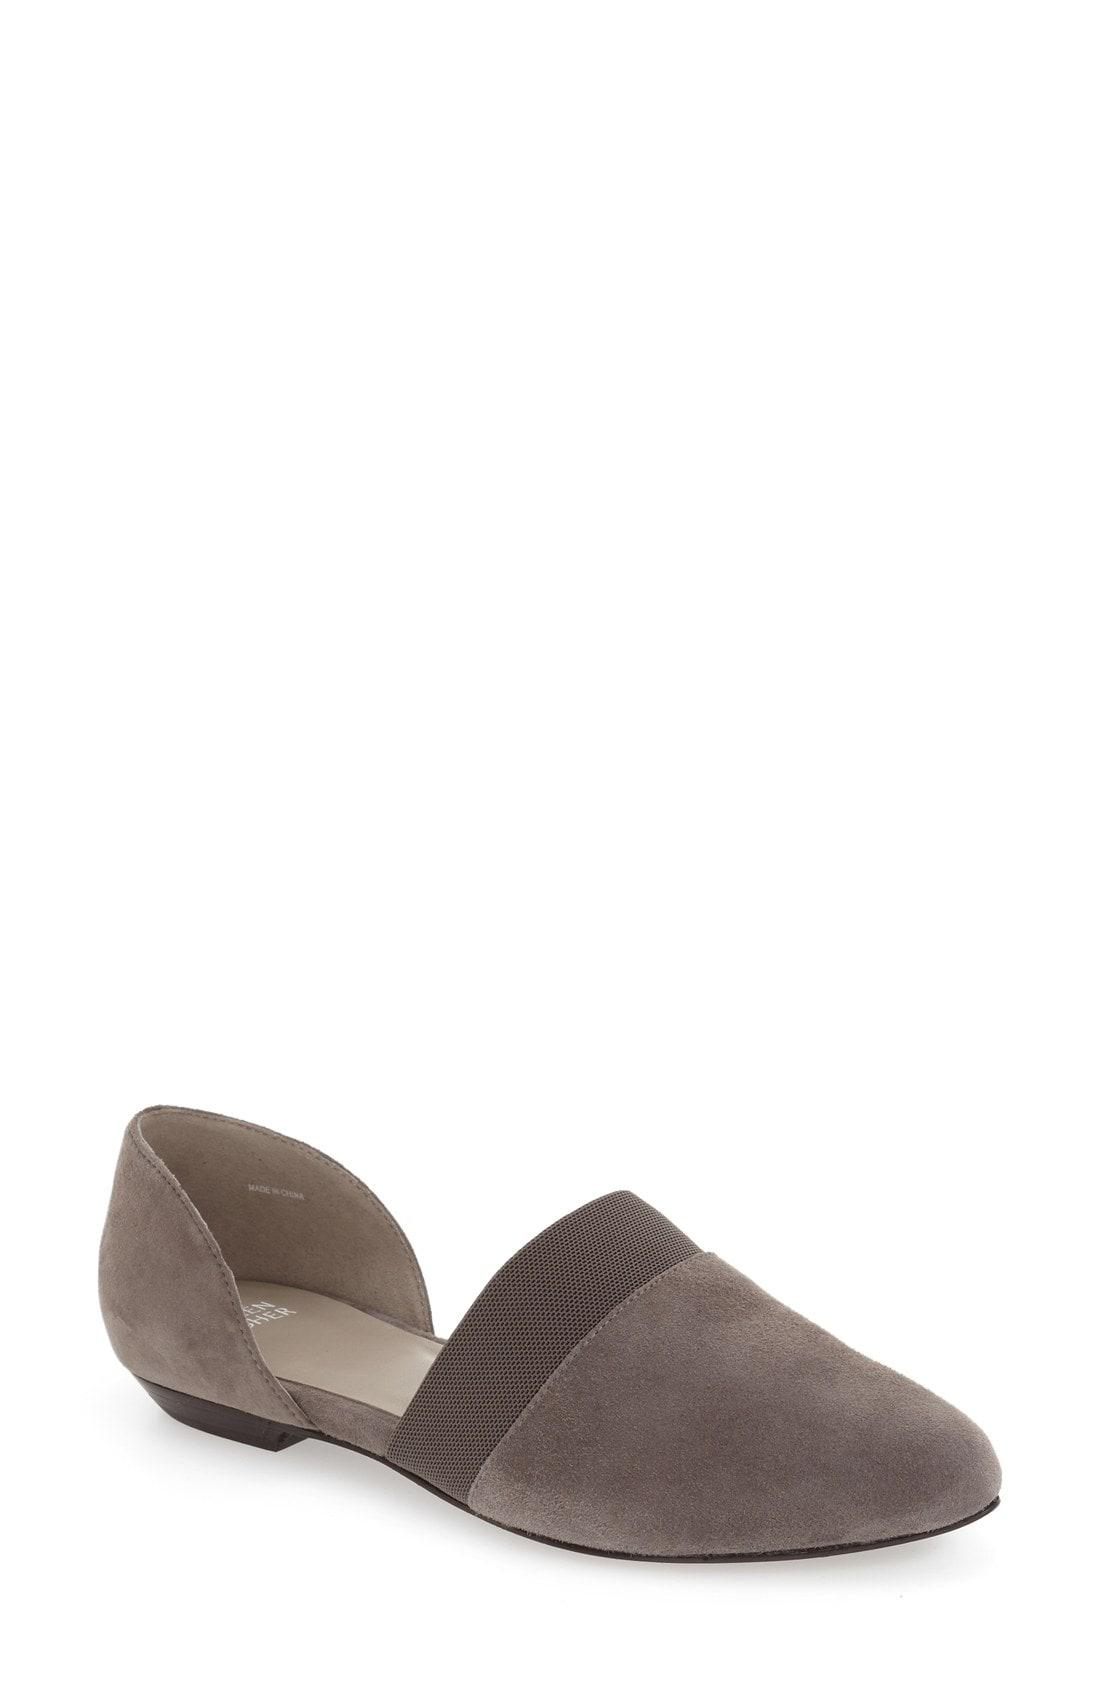 97e20d62c50 Lyst - Eileen Fisher Flute Pointy Toe Flat